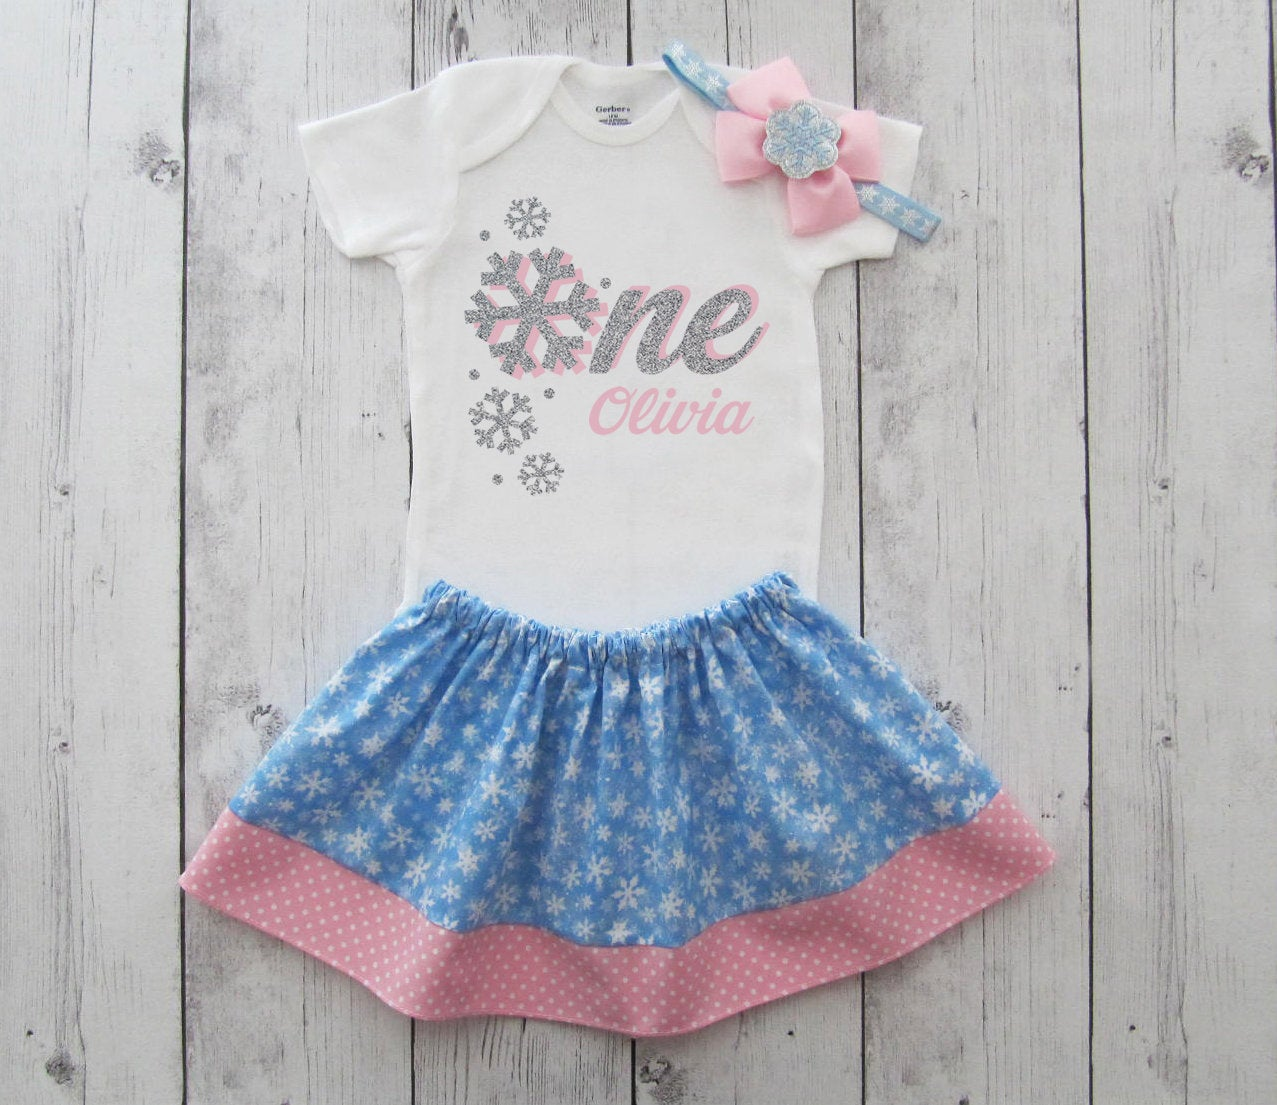 Winter ONEderland First Birthday Outfit in silver, pink and blue snowfakes - girl first birthday outfit, snow much fun to be one